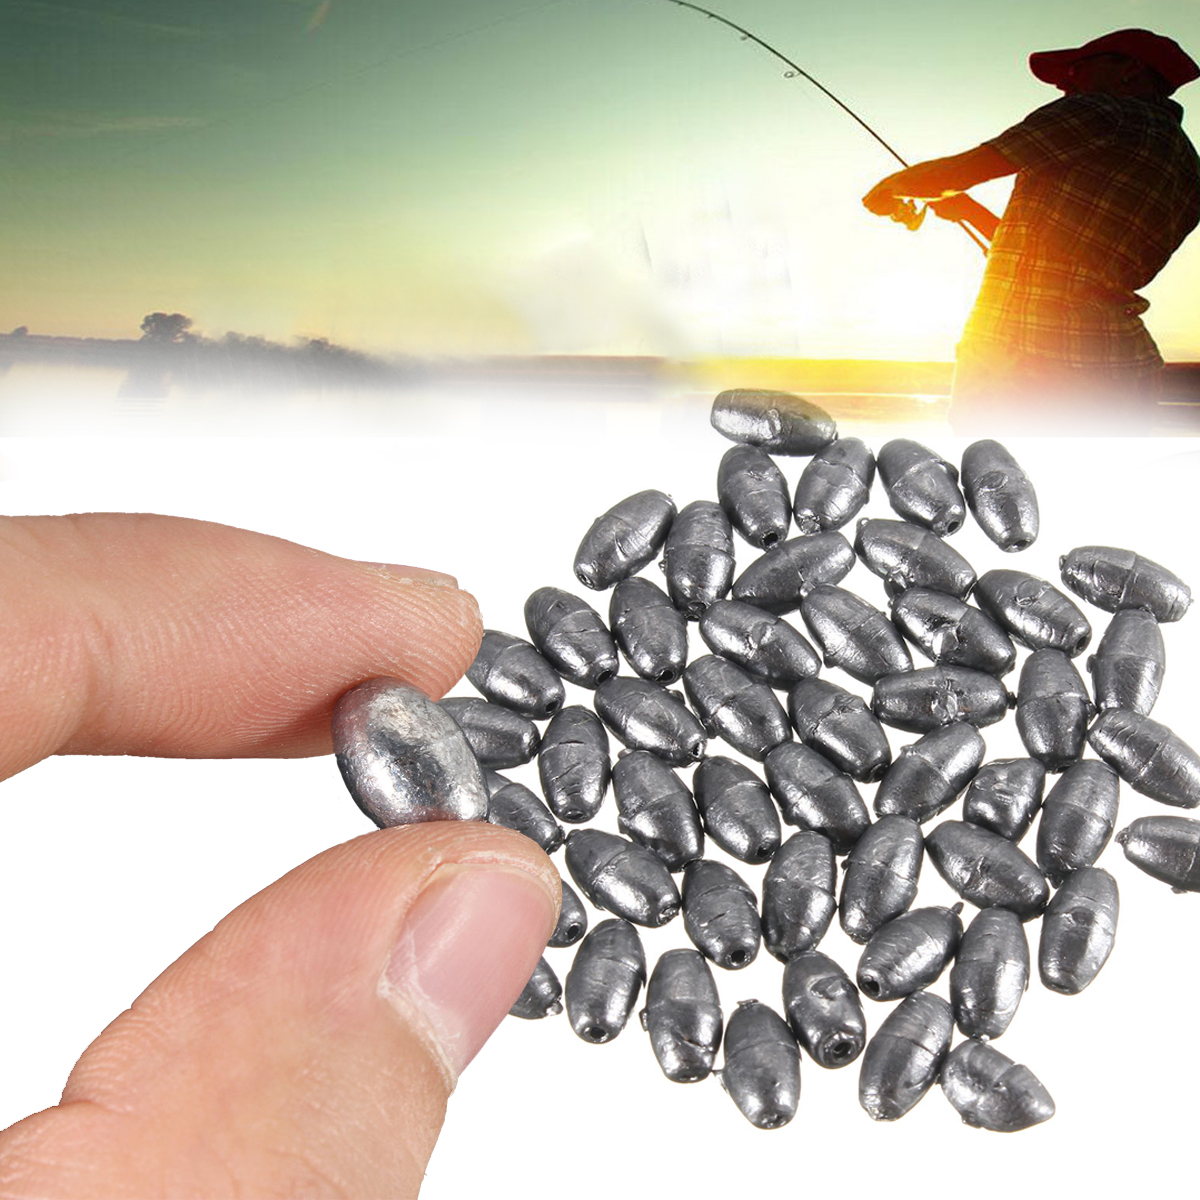 50pcs Metal Olive Shape Leads Sinkers Fishing Sinker Pure Lead Making Sea Fishing Sinker Tackle